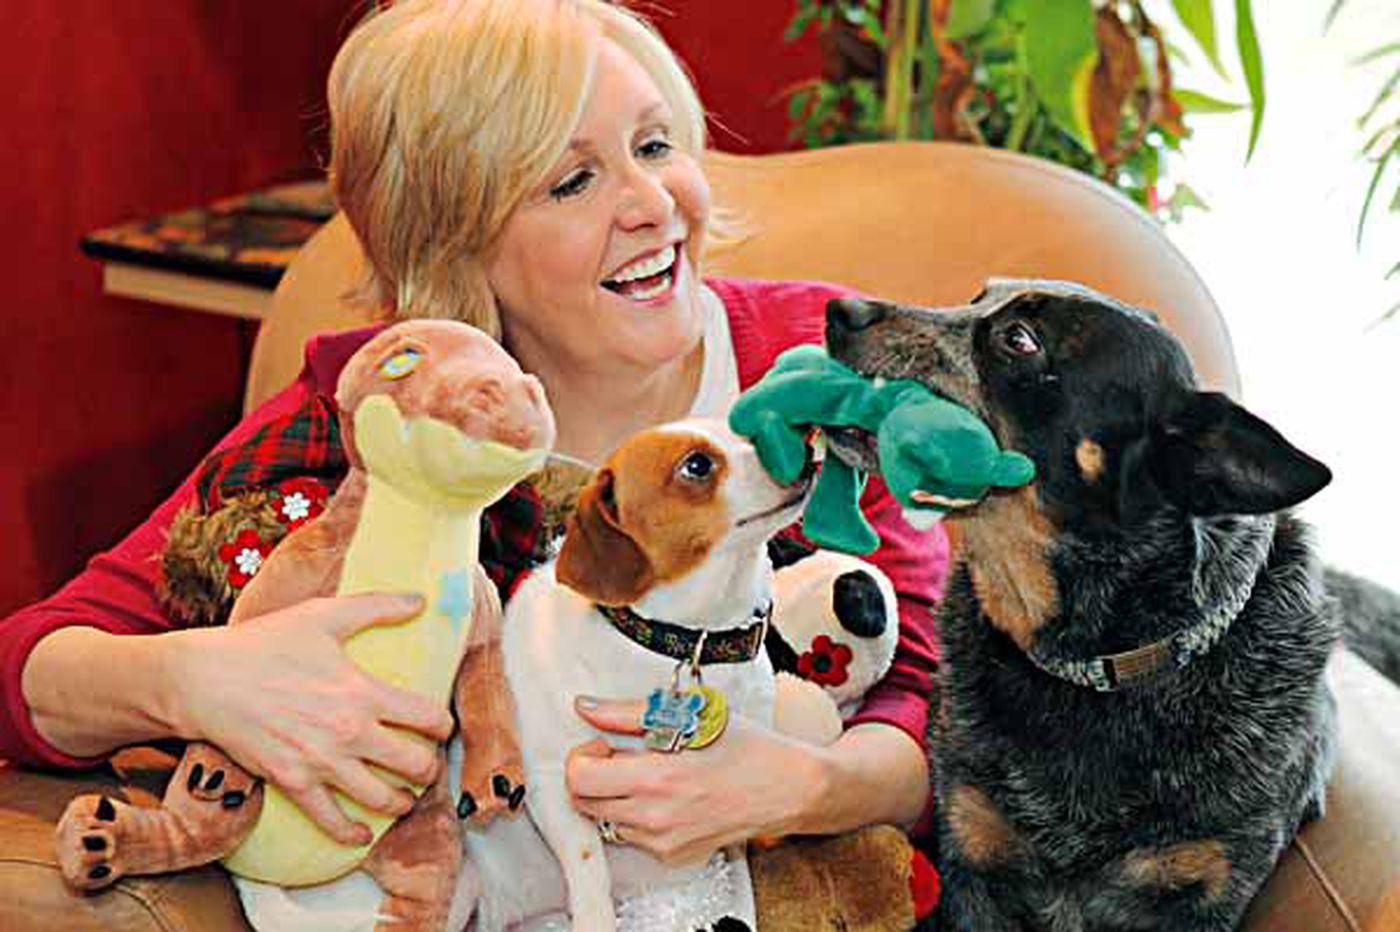 Old toys become pet fun and promote spaying, neutering